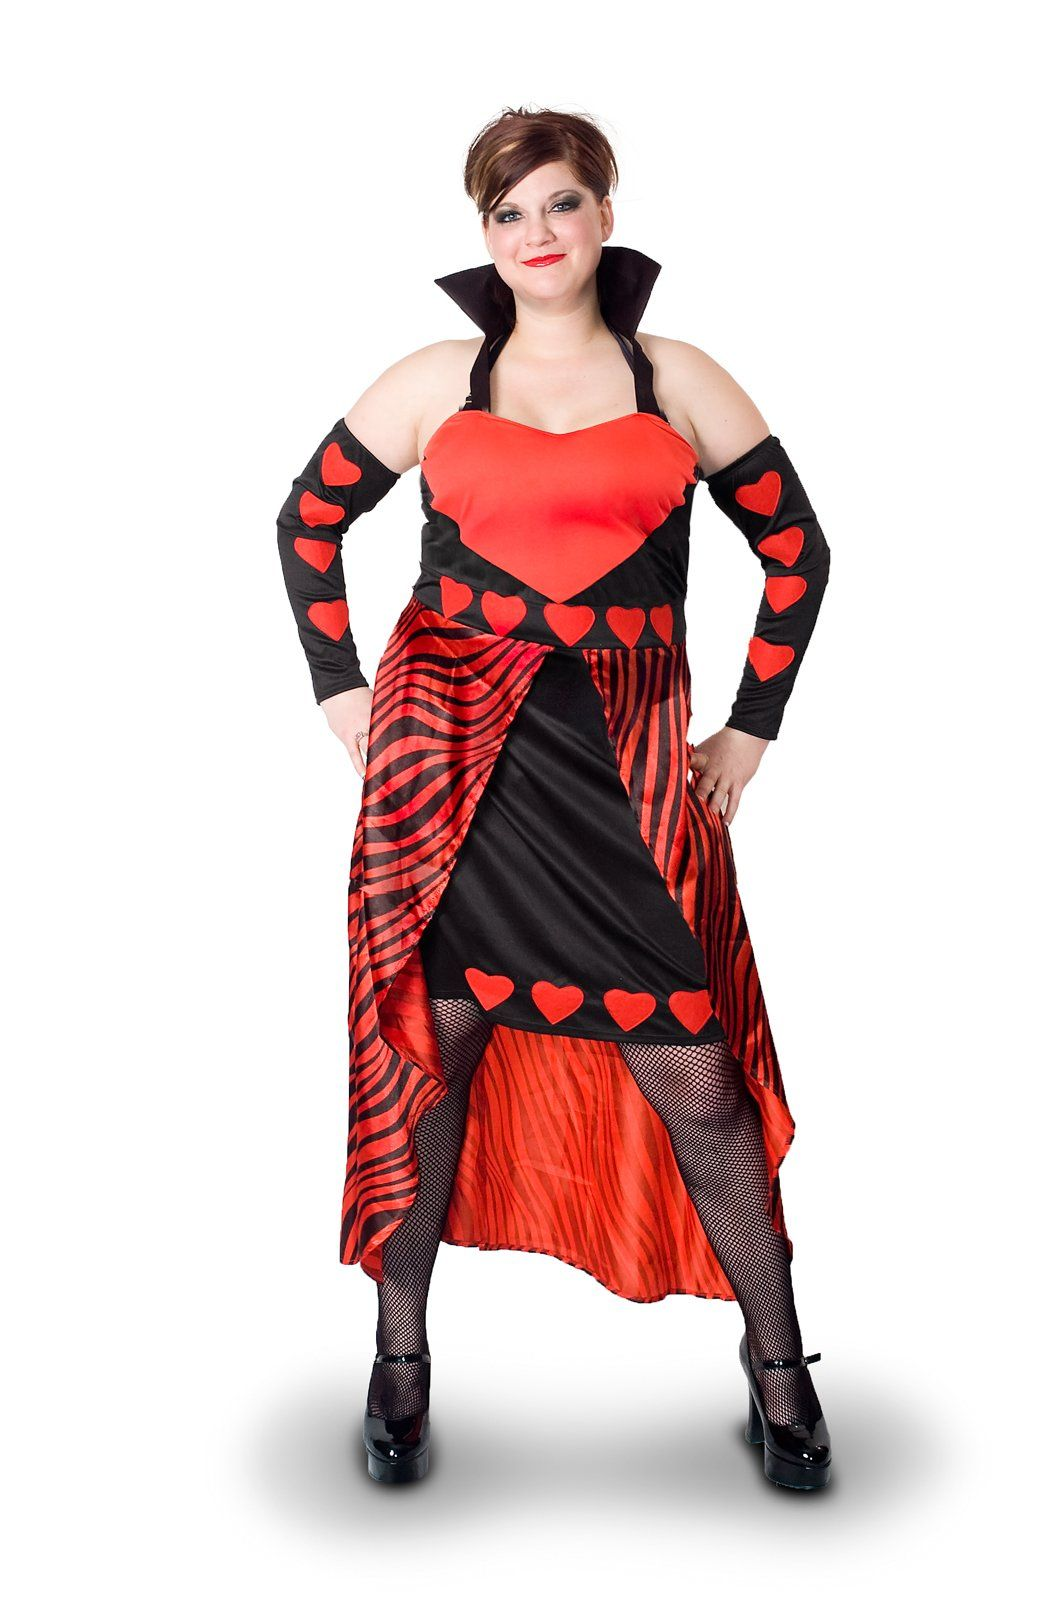 Sunnywood Women S Plus Size Lava Diva Queen Of Hearts Costume Red Black 3x Large